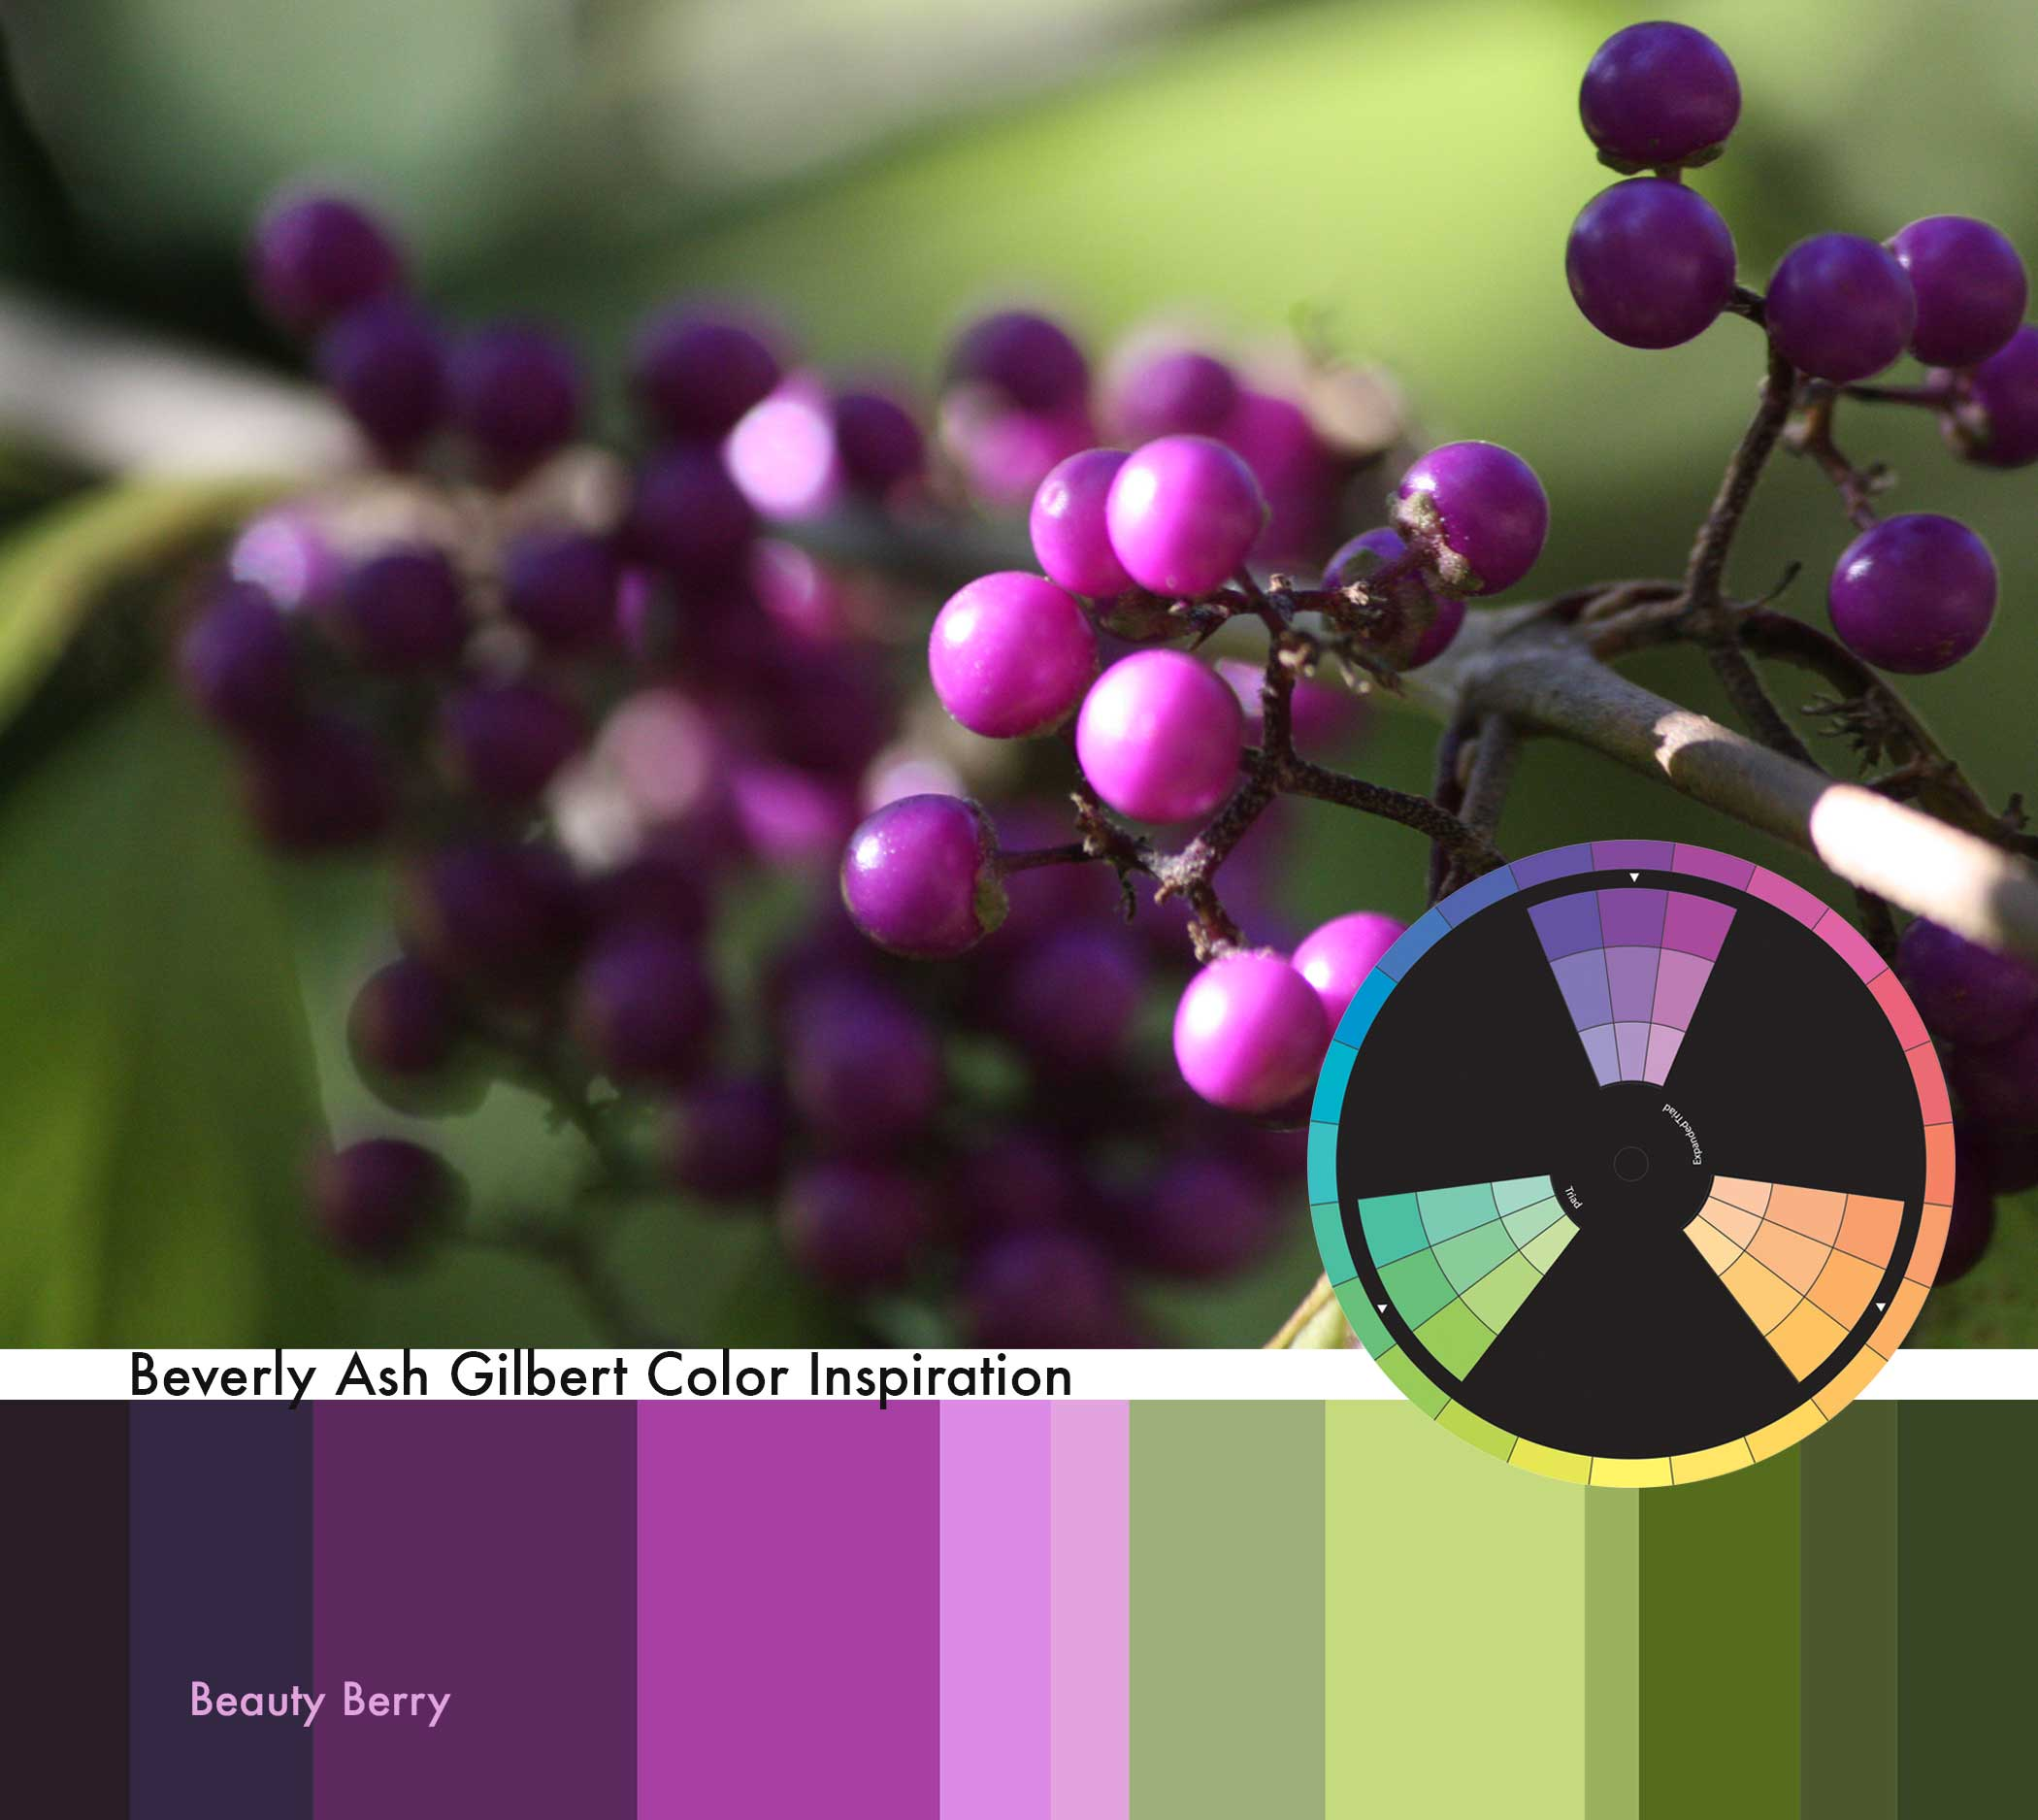 ColorInspiration_BeautyBerry_small.jpg